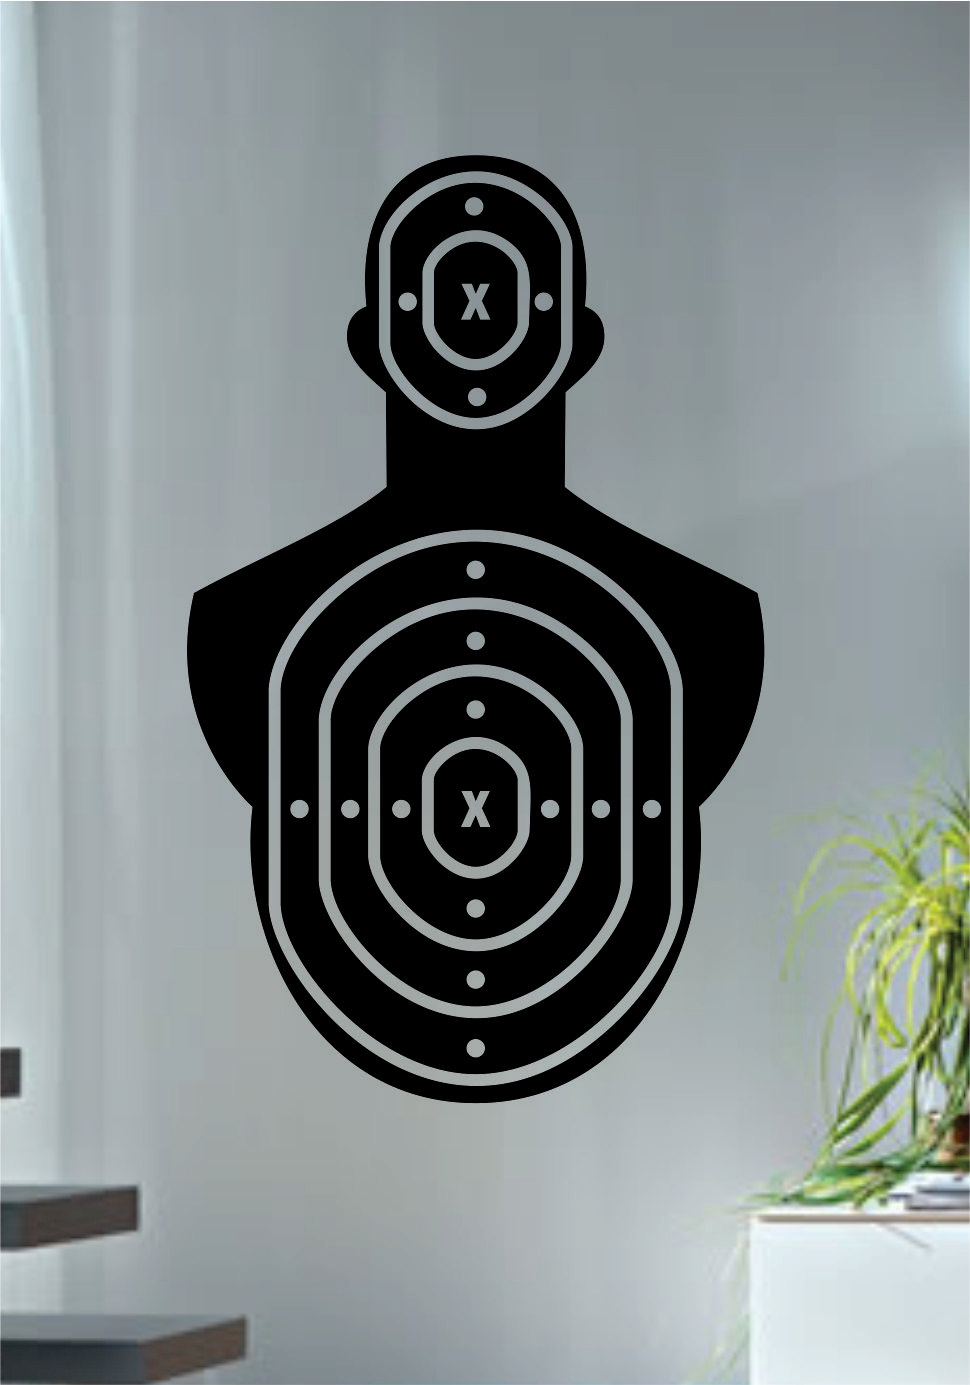 Shooting Range Wall Decal Special Design Target Version Cool Wall Stickers Gun Art Mural Removable Waterproof Home Decor SYY581